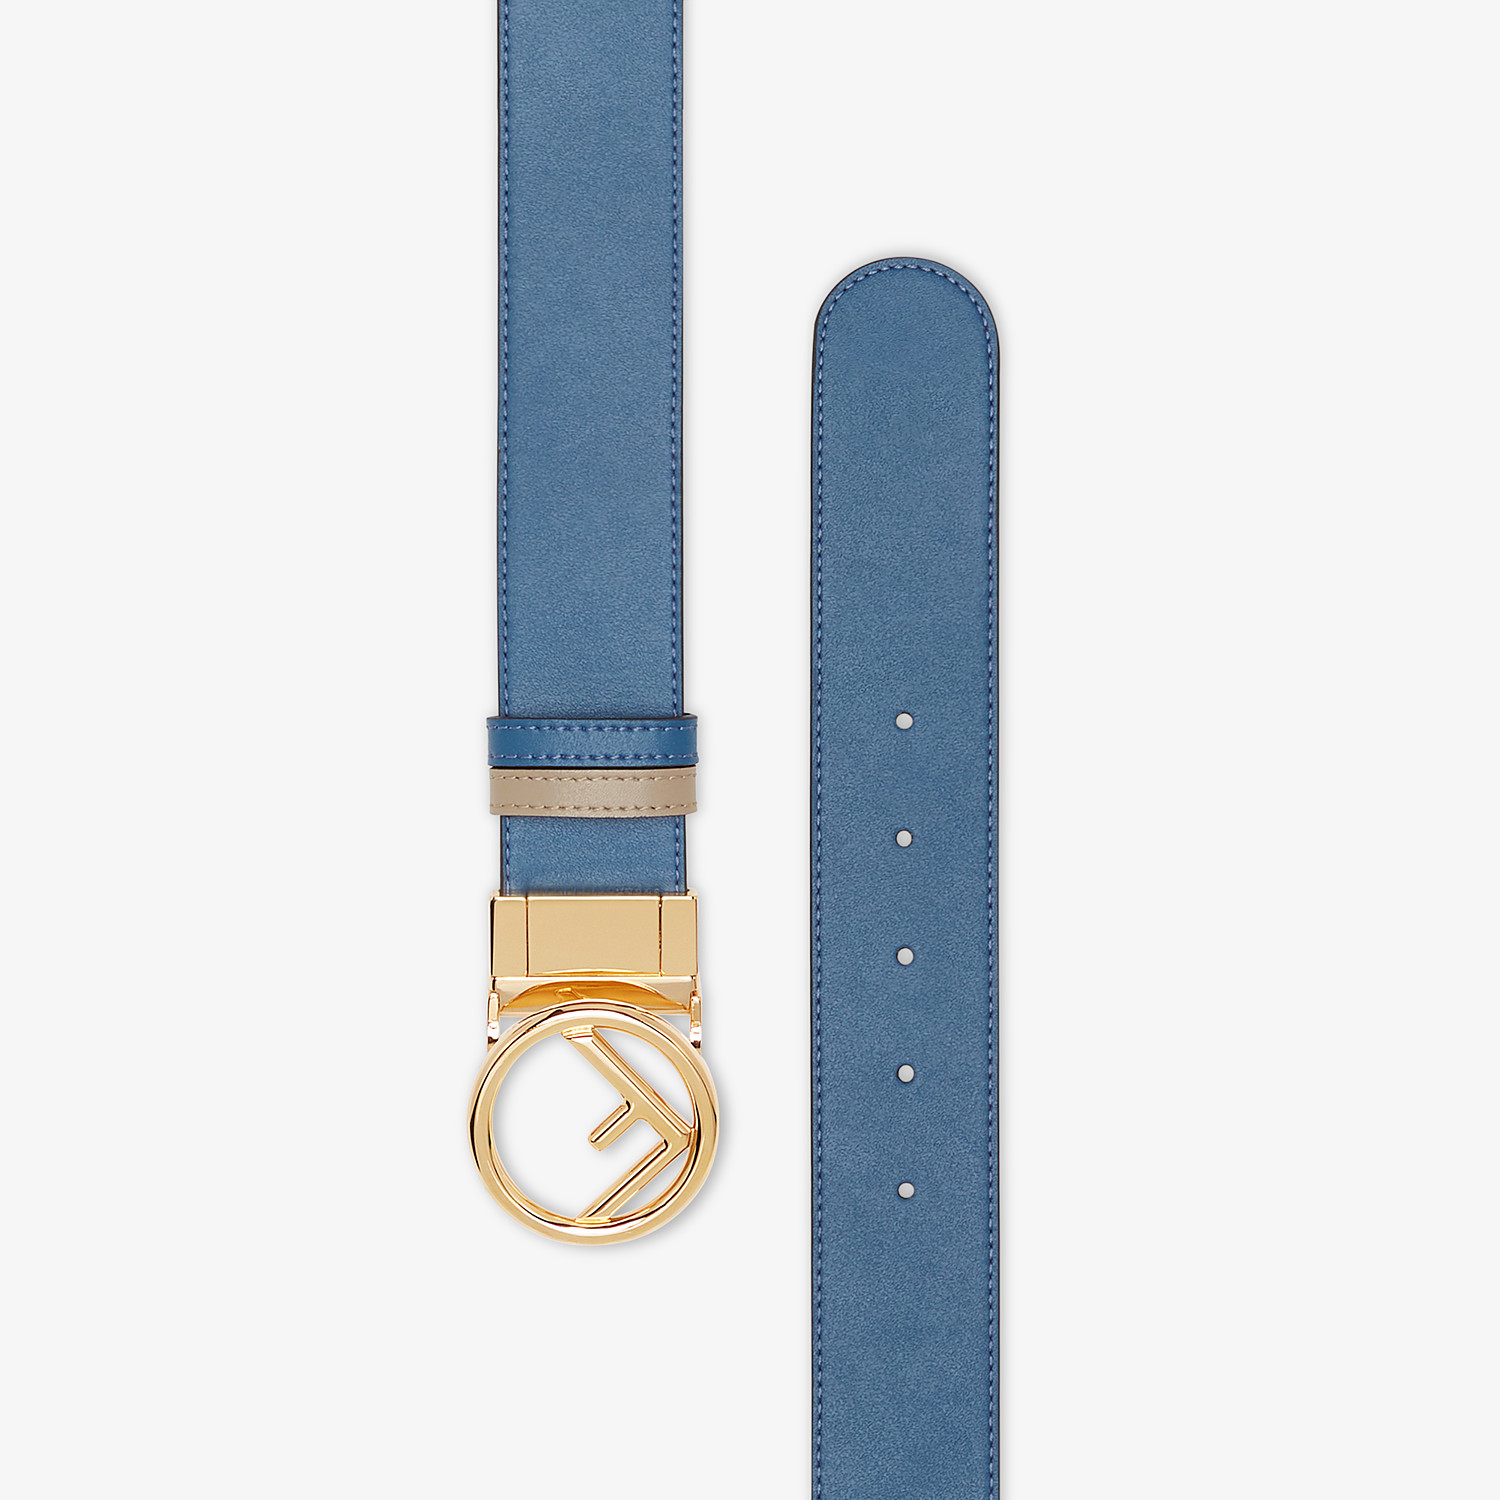 FENDI BELT - Beige and blue leather belt - view 2 detail